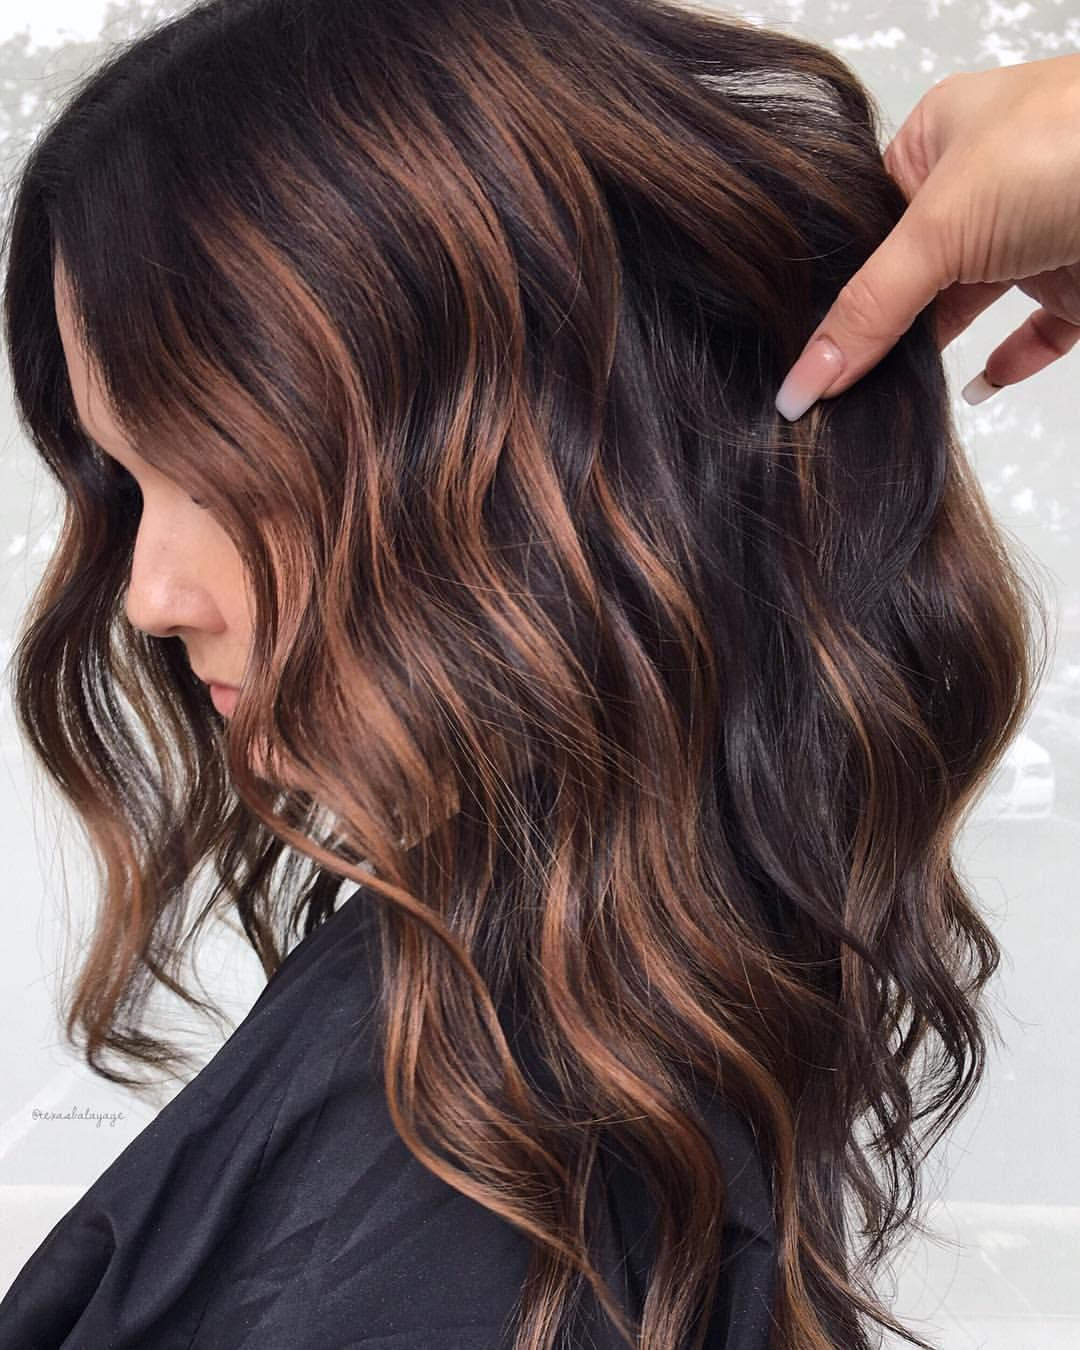 Brittany Banda On Instagram Warm Caramel Chocolate First Session Painting For This Beauty Cool Brown Hair Dark Caramel Hair Color Dark Caramel Hair